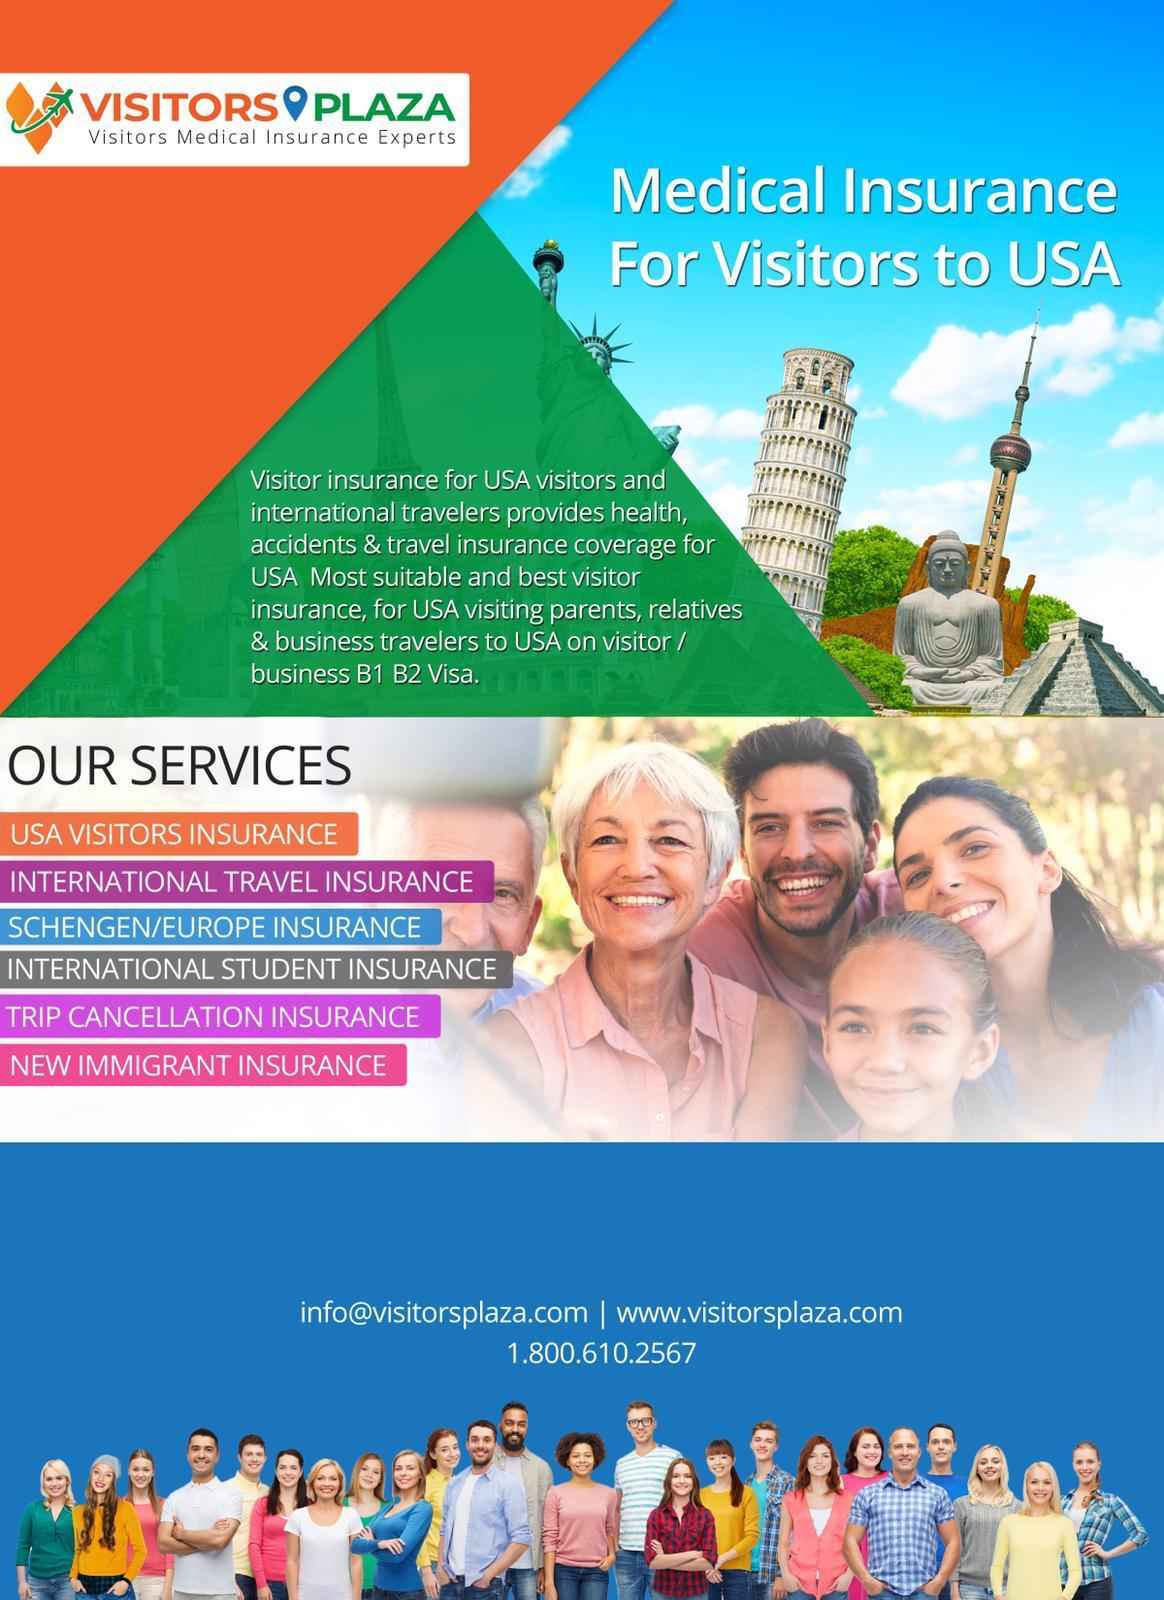 Medical Insurance For Visitors to USA